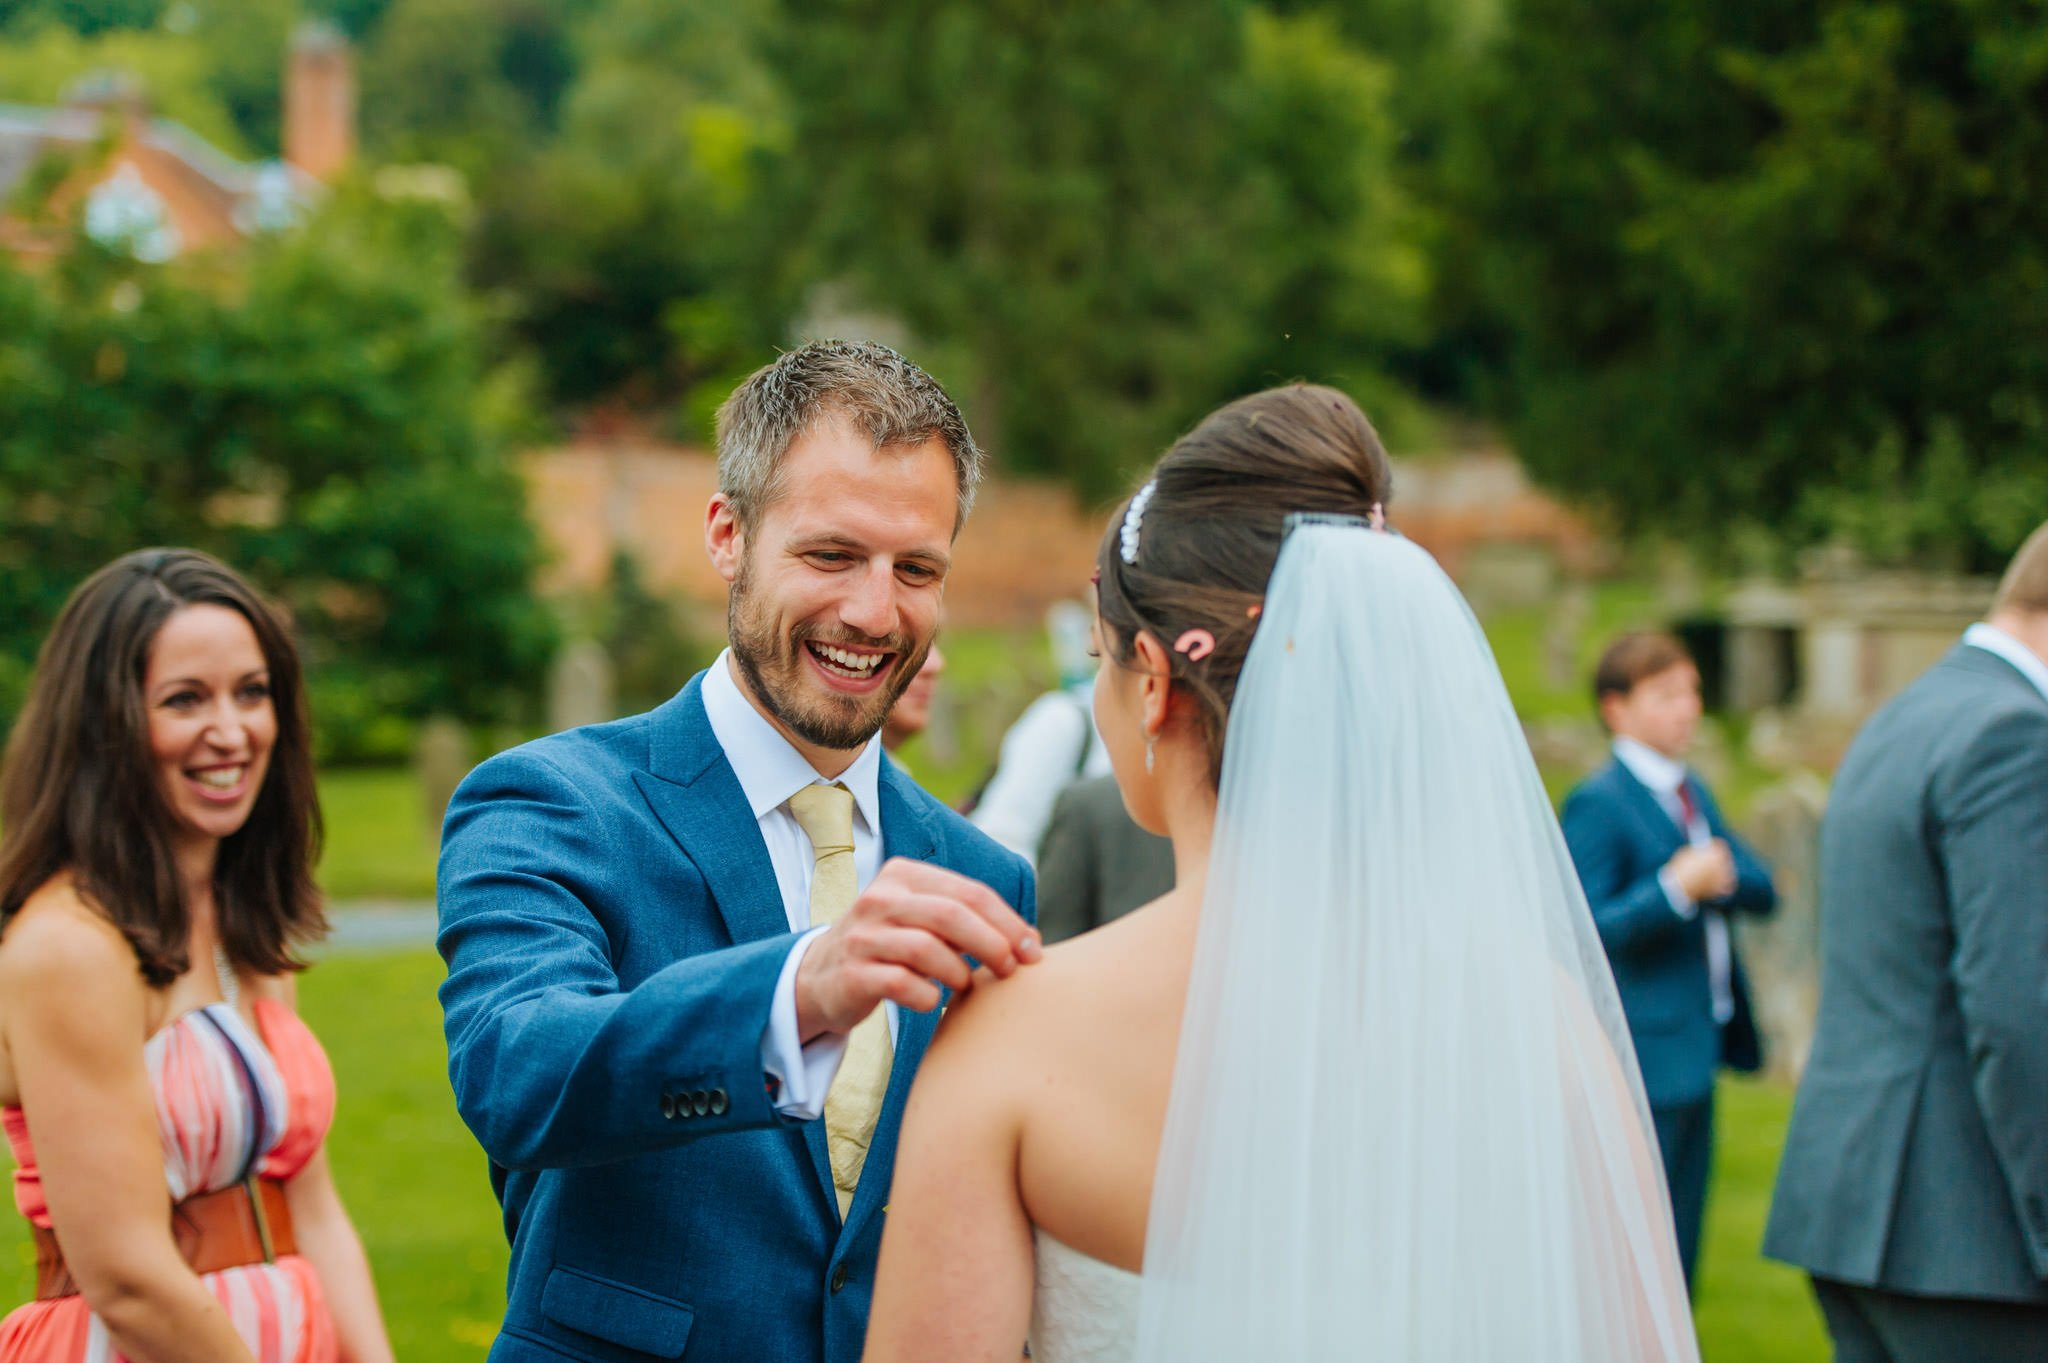 eastnor castle wedding pictures 43 - Eastnor Castle wedding photographer Herefordshire, West Midlands - Sarah + Dean